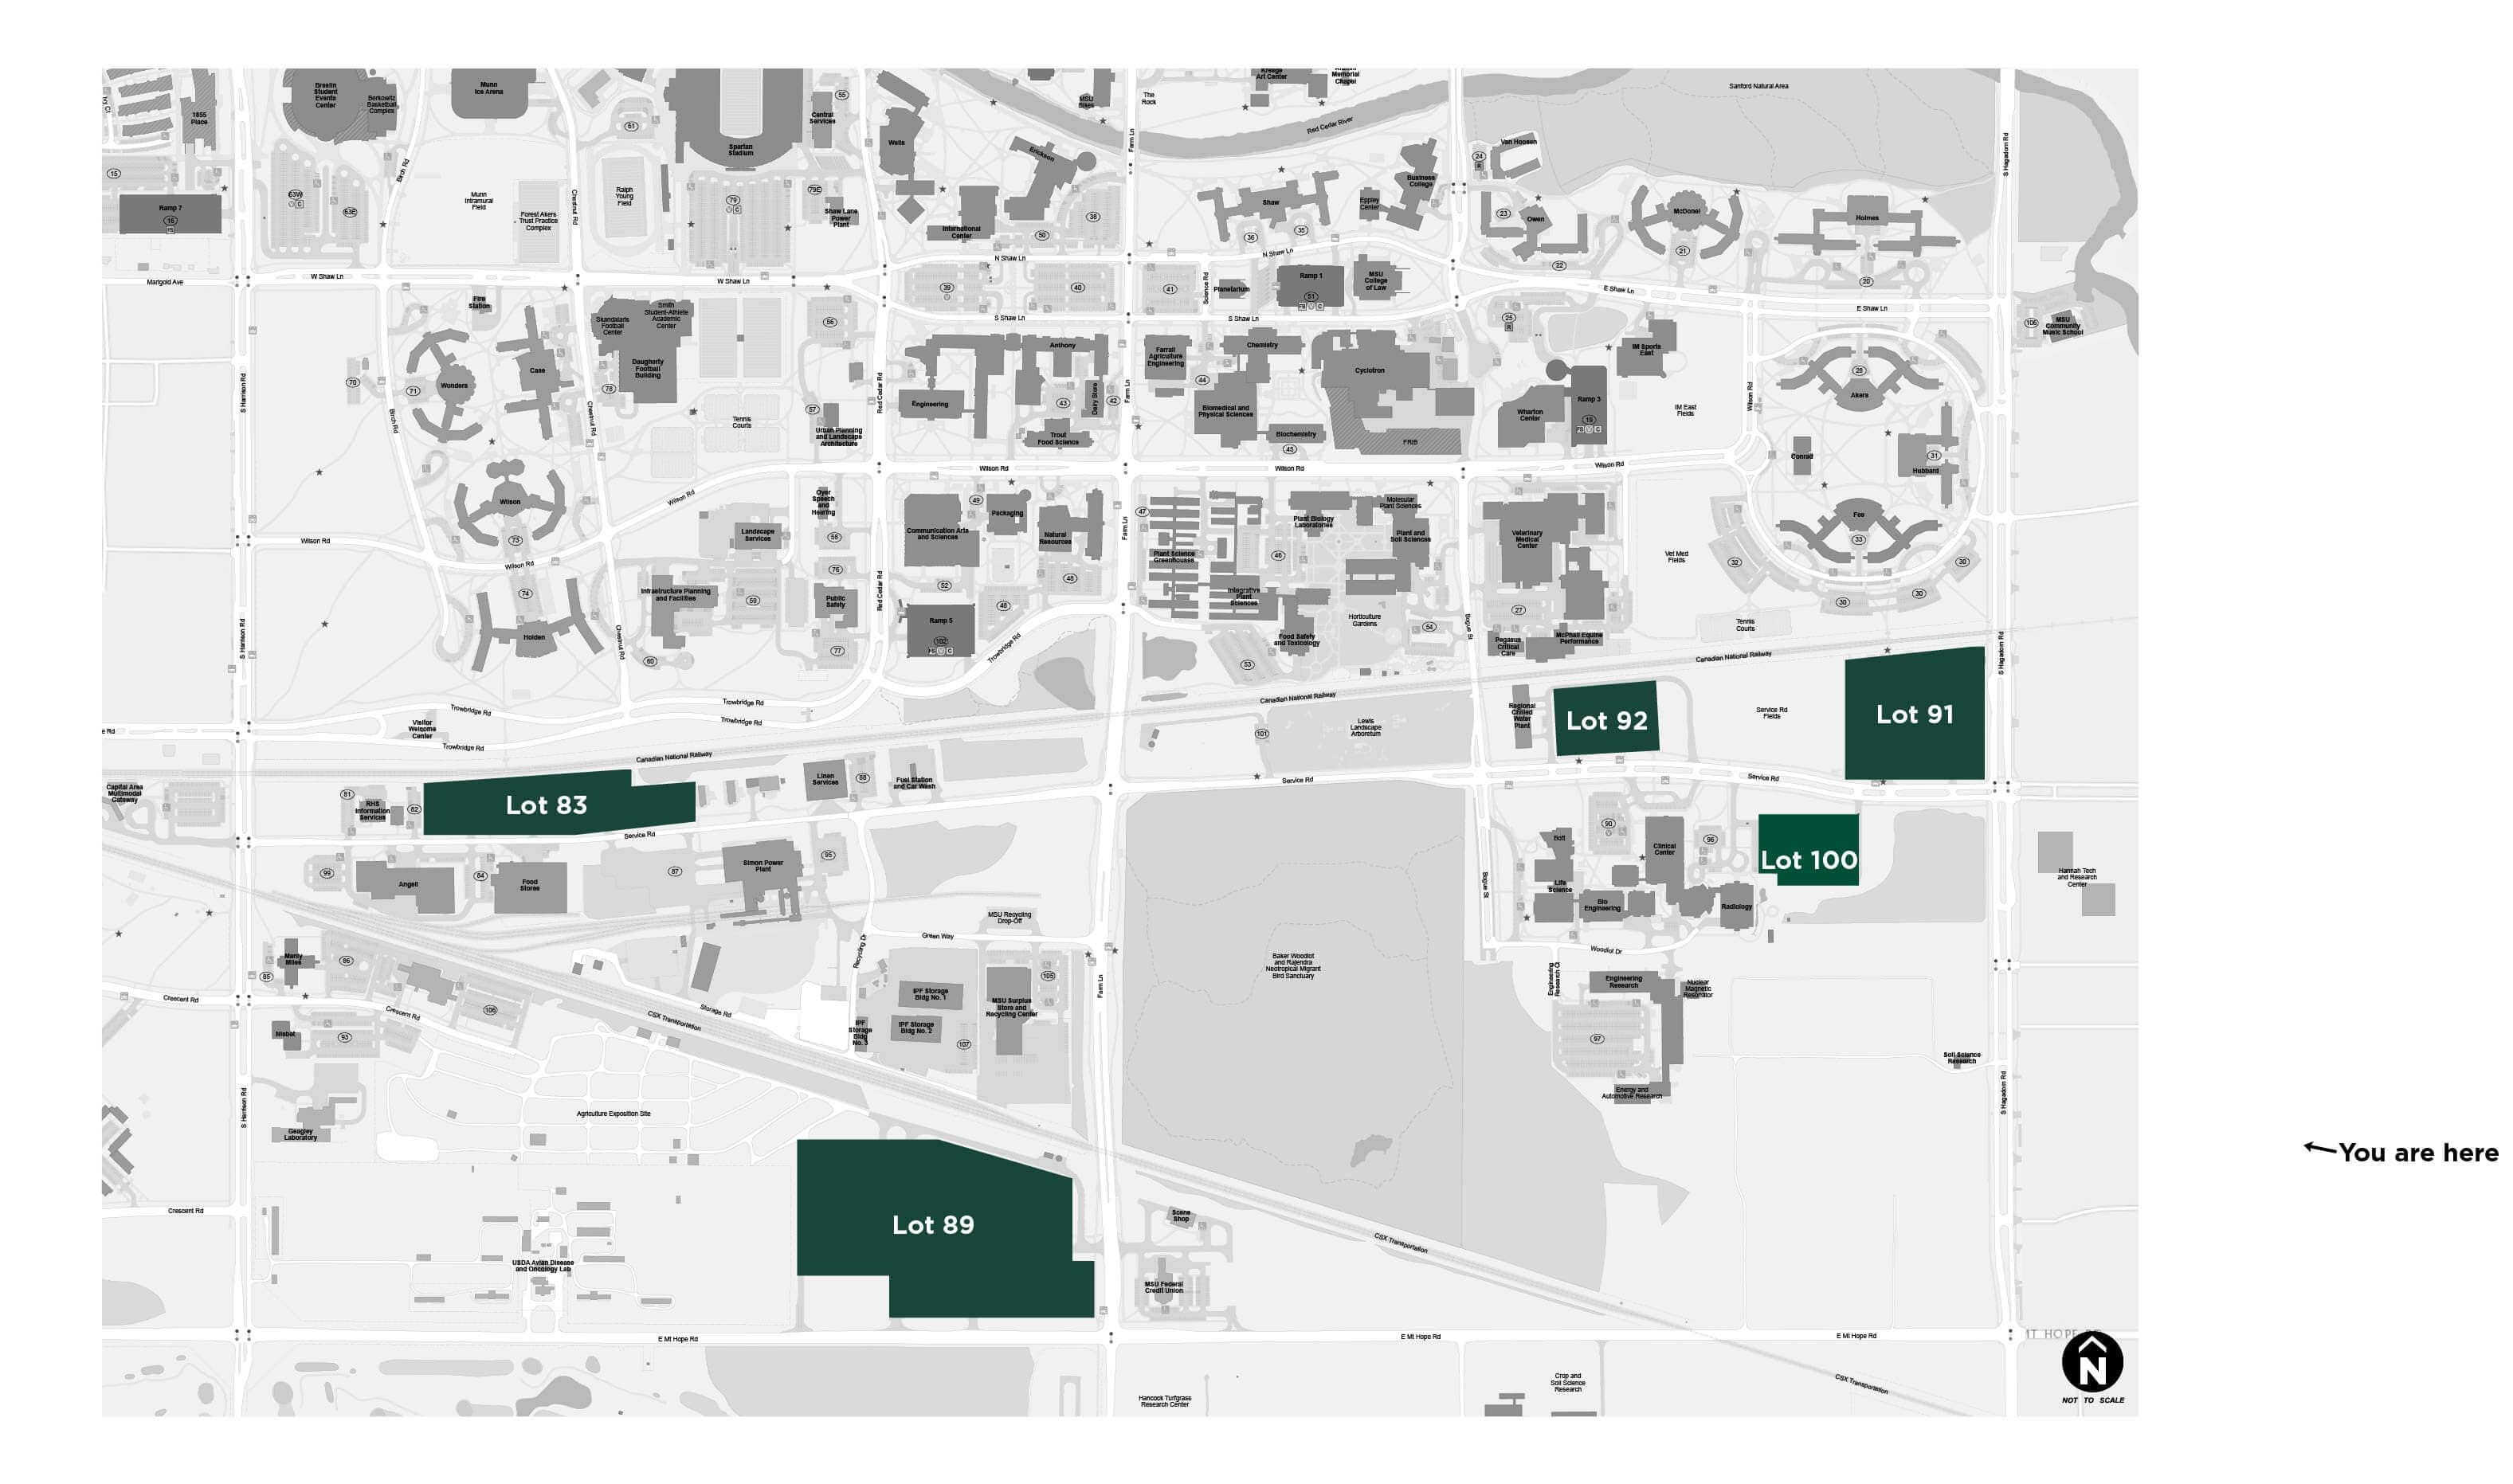 solar-array-parking-lot-map Construction Starts On Solar Carports At Michigan State University